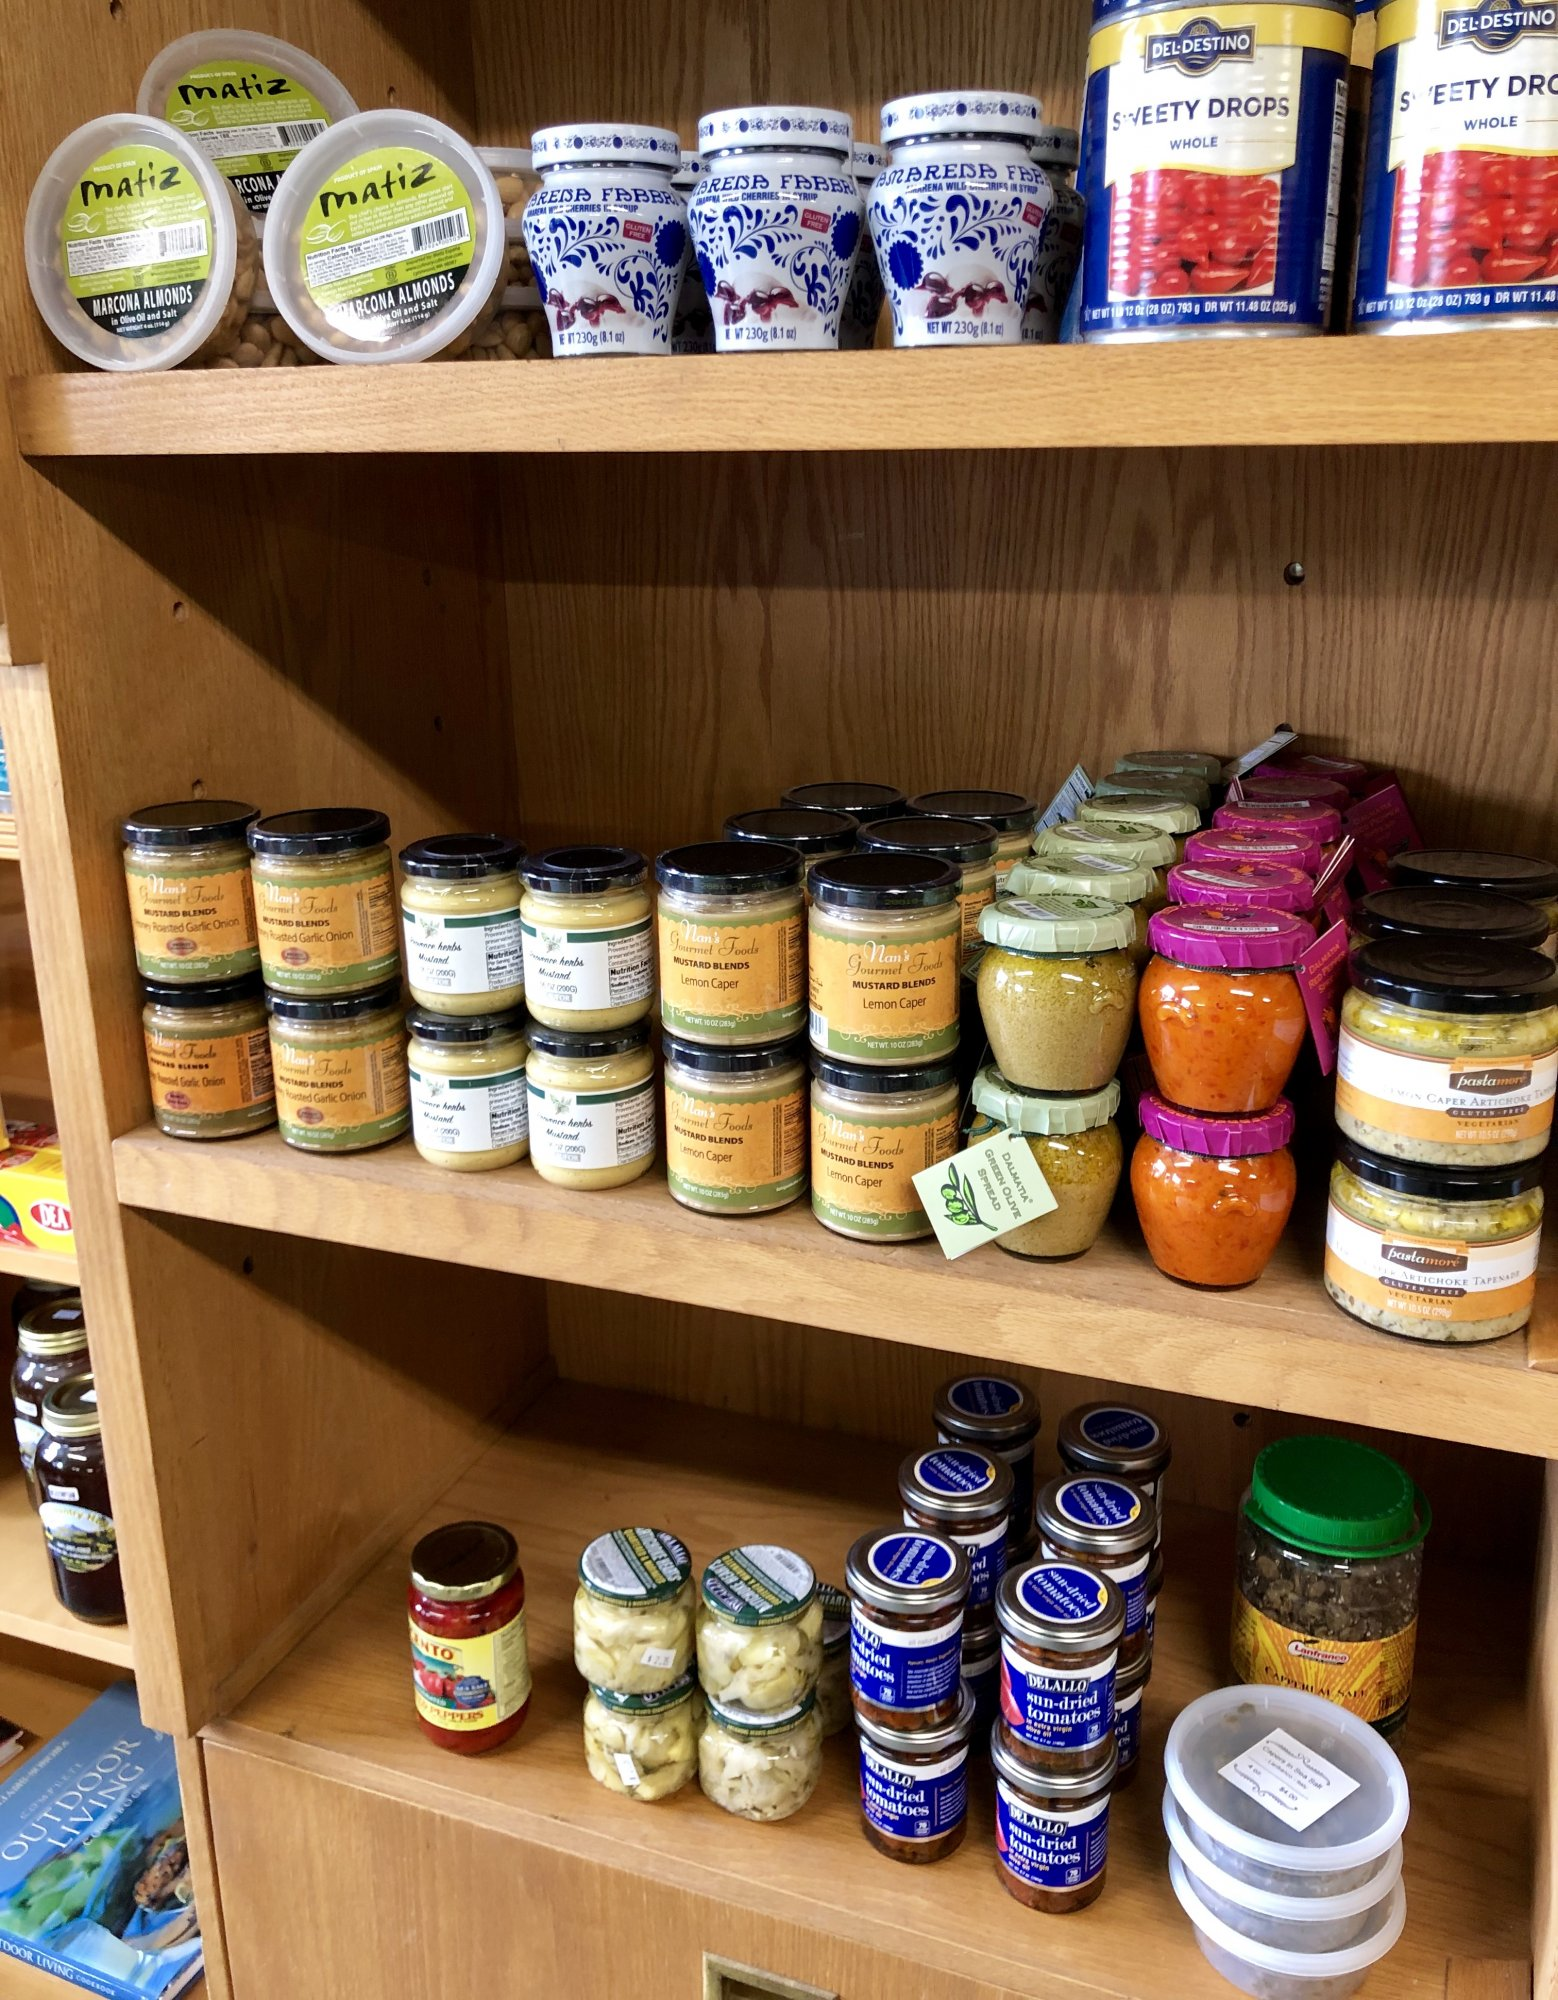 South Coast Gourmet - Spreads, Sauces, & Other Canape-Style Foods